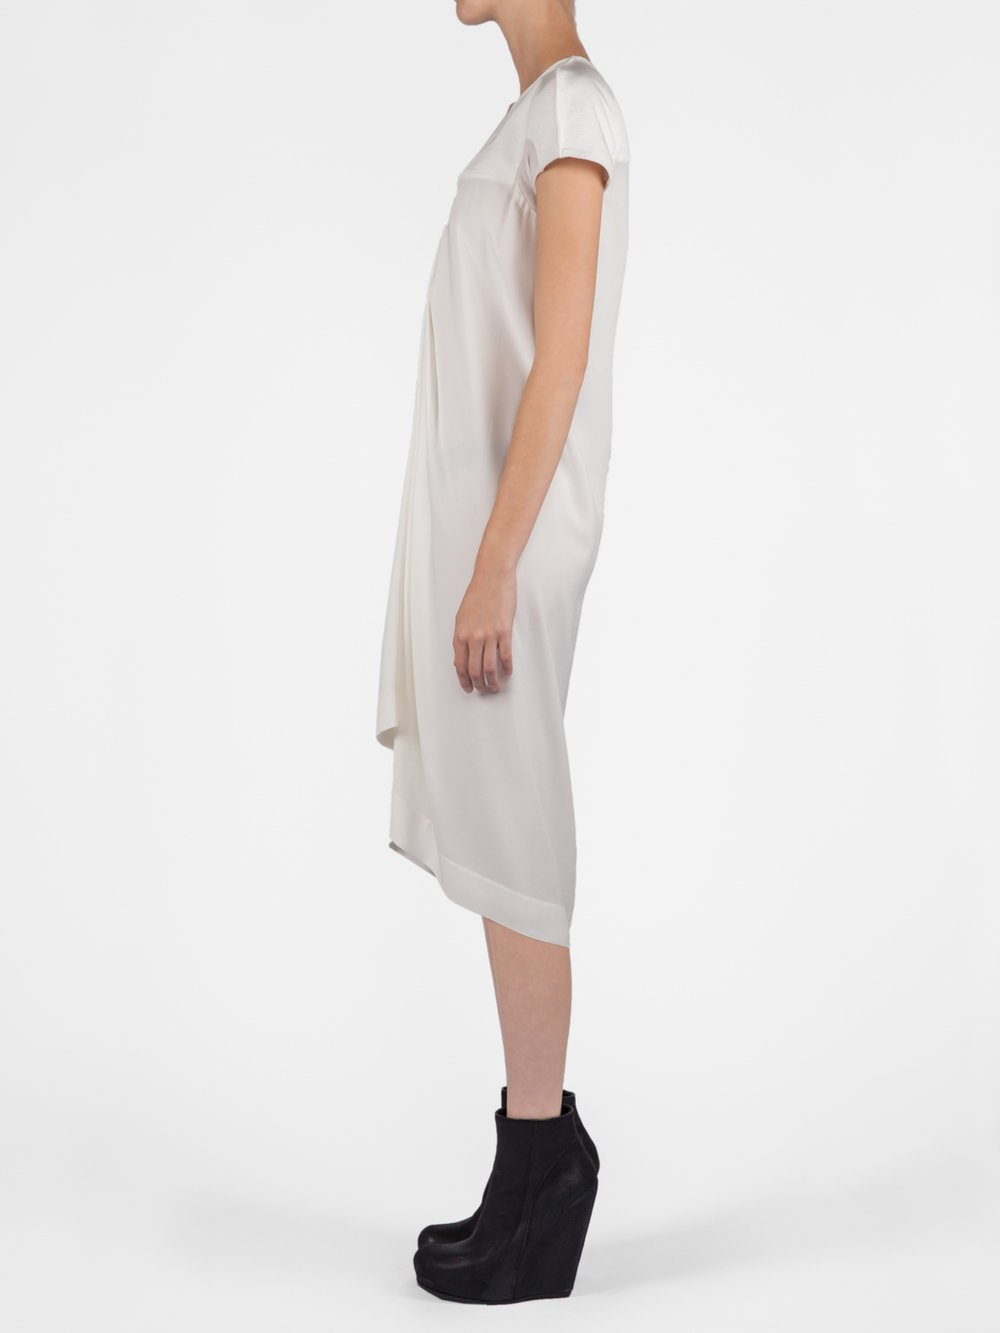 RICK OWENS - ATHENA DRESS